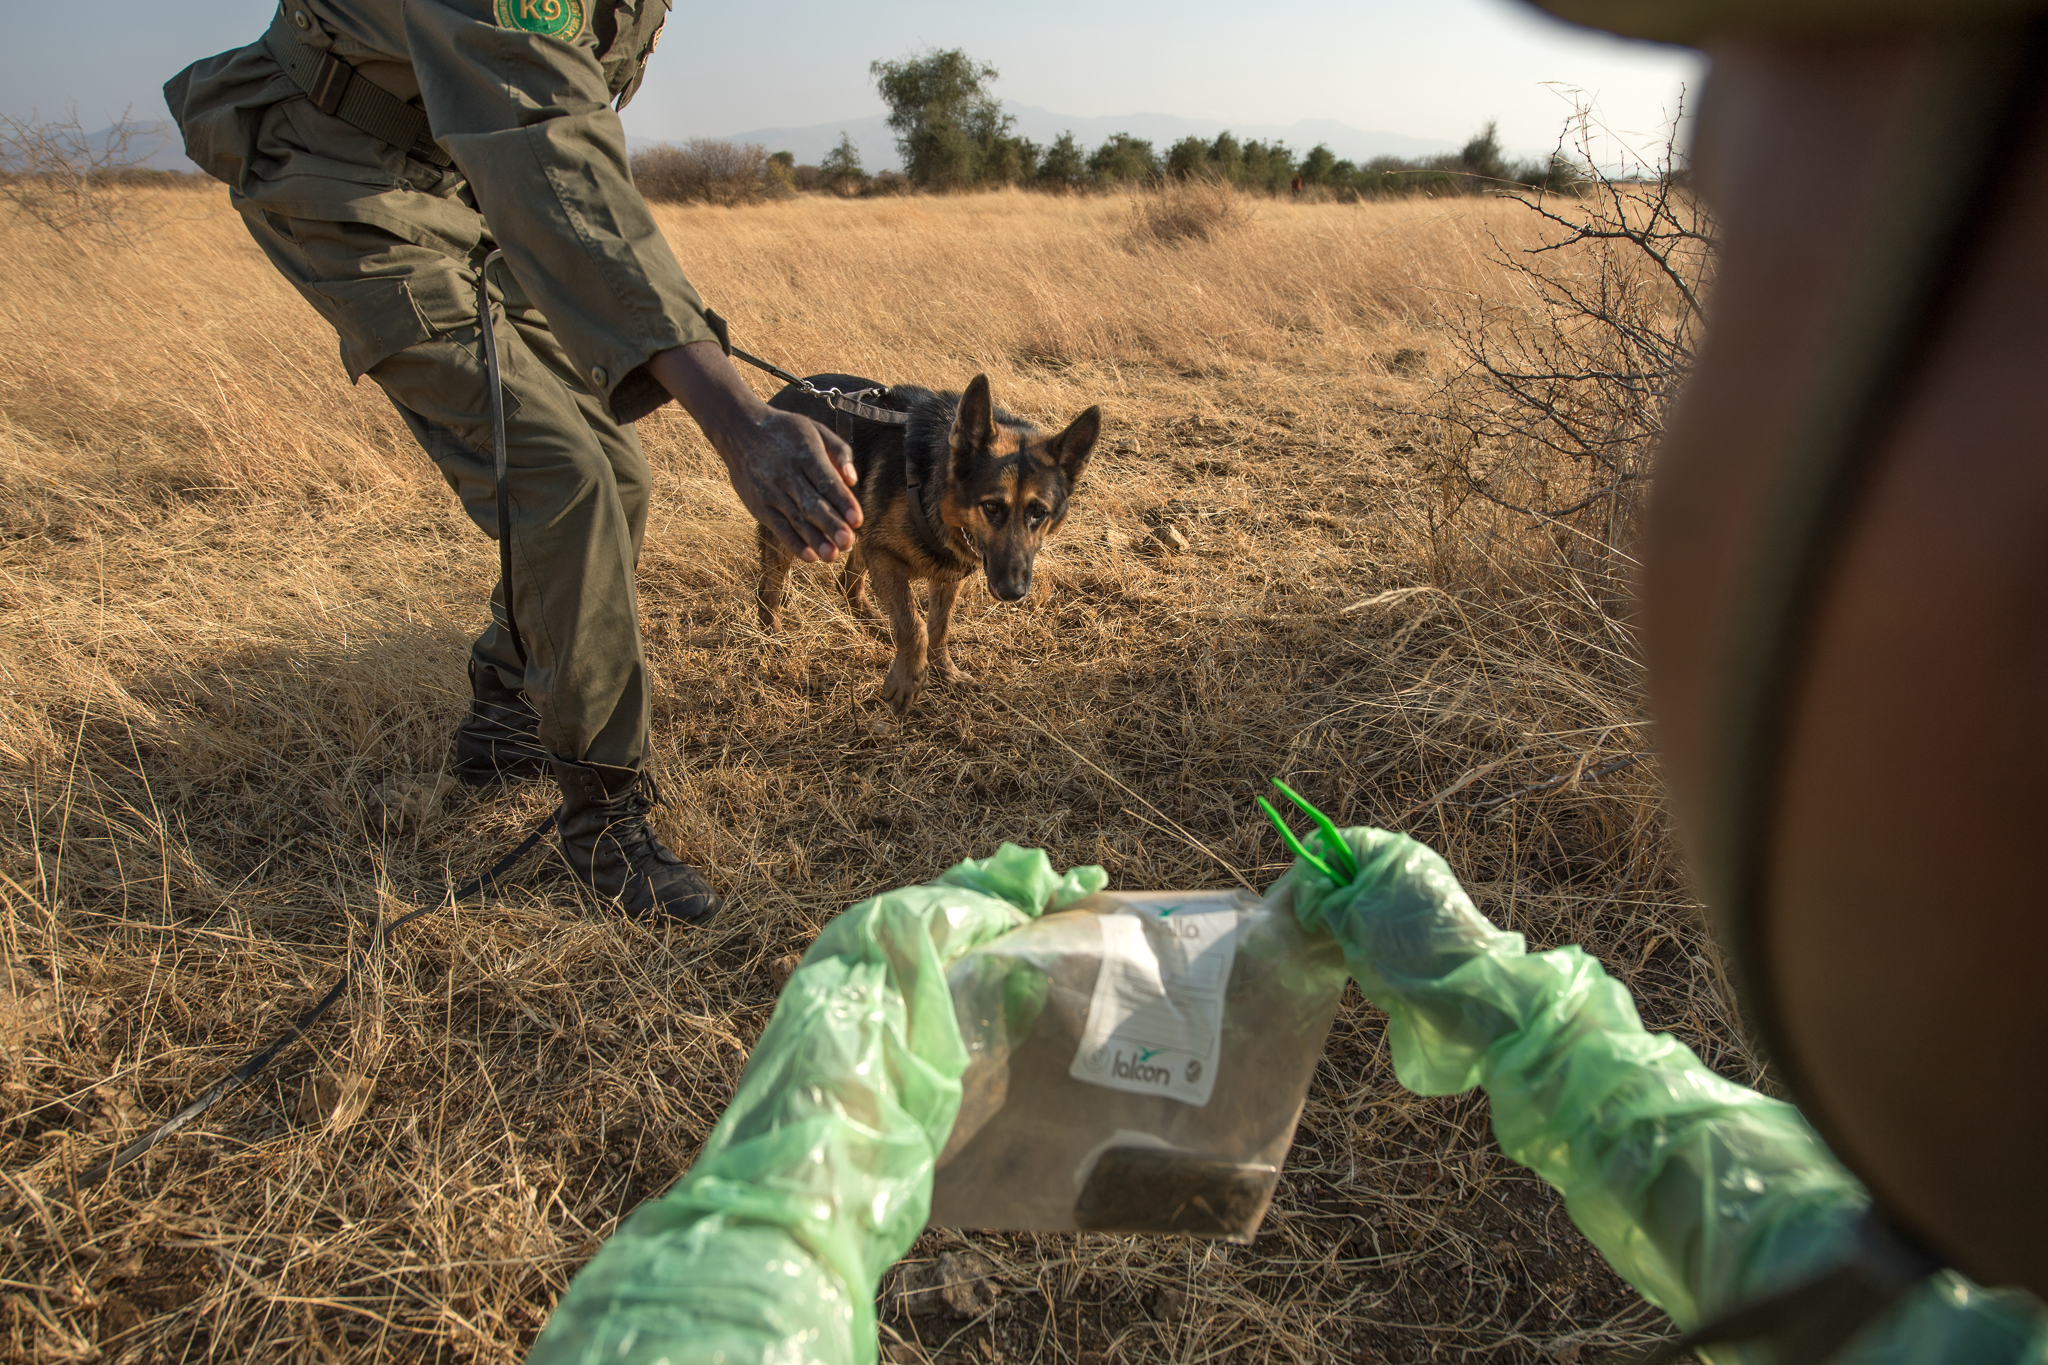 Kayongo Kalasinga prepares a training exercise for tracker dog Rocky. First, Kalasinga places fresh gauze over the footprints to absorb the person's smell. Then the gauze is presented to the dog to track the source.